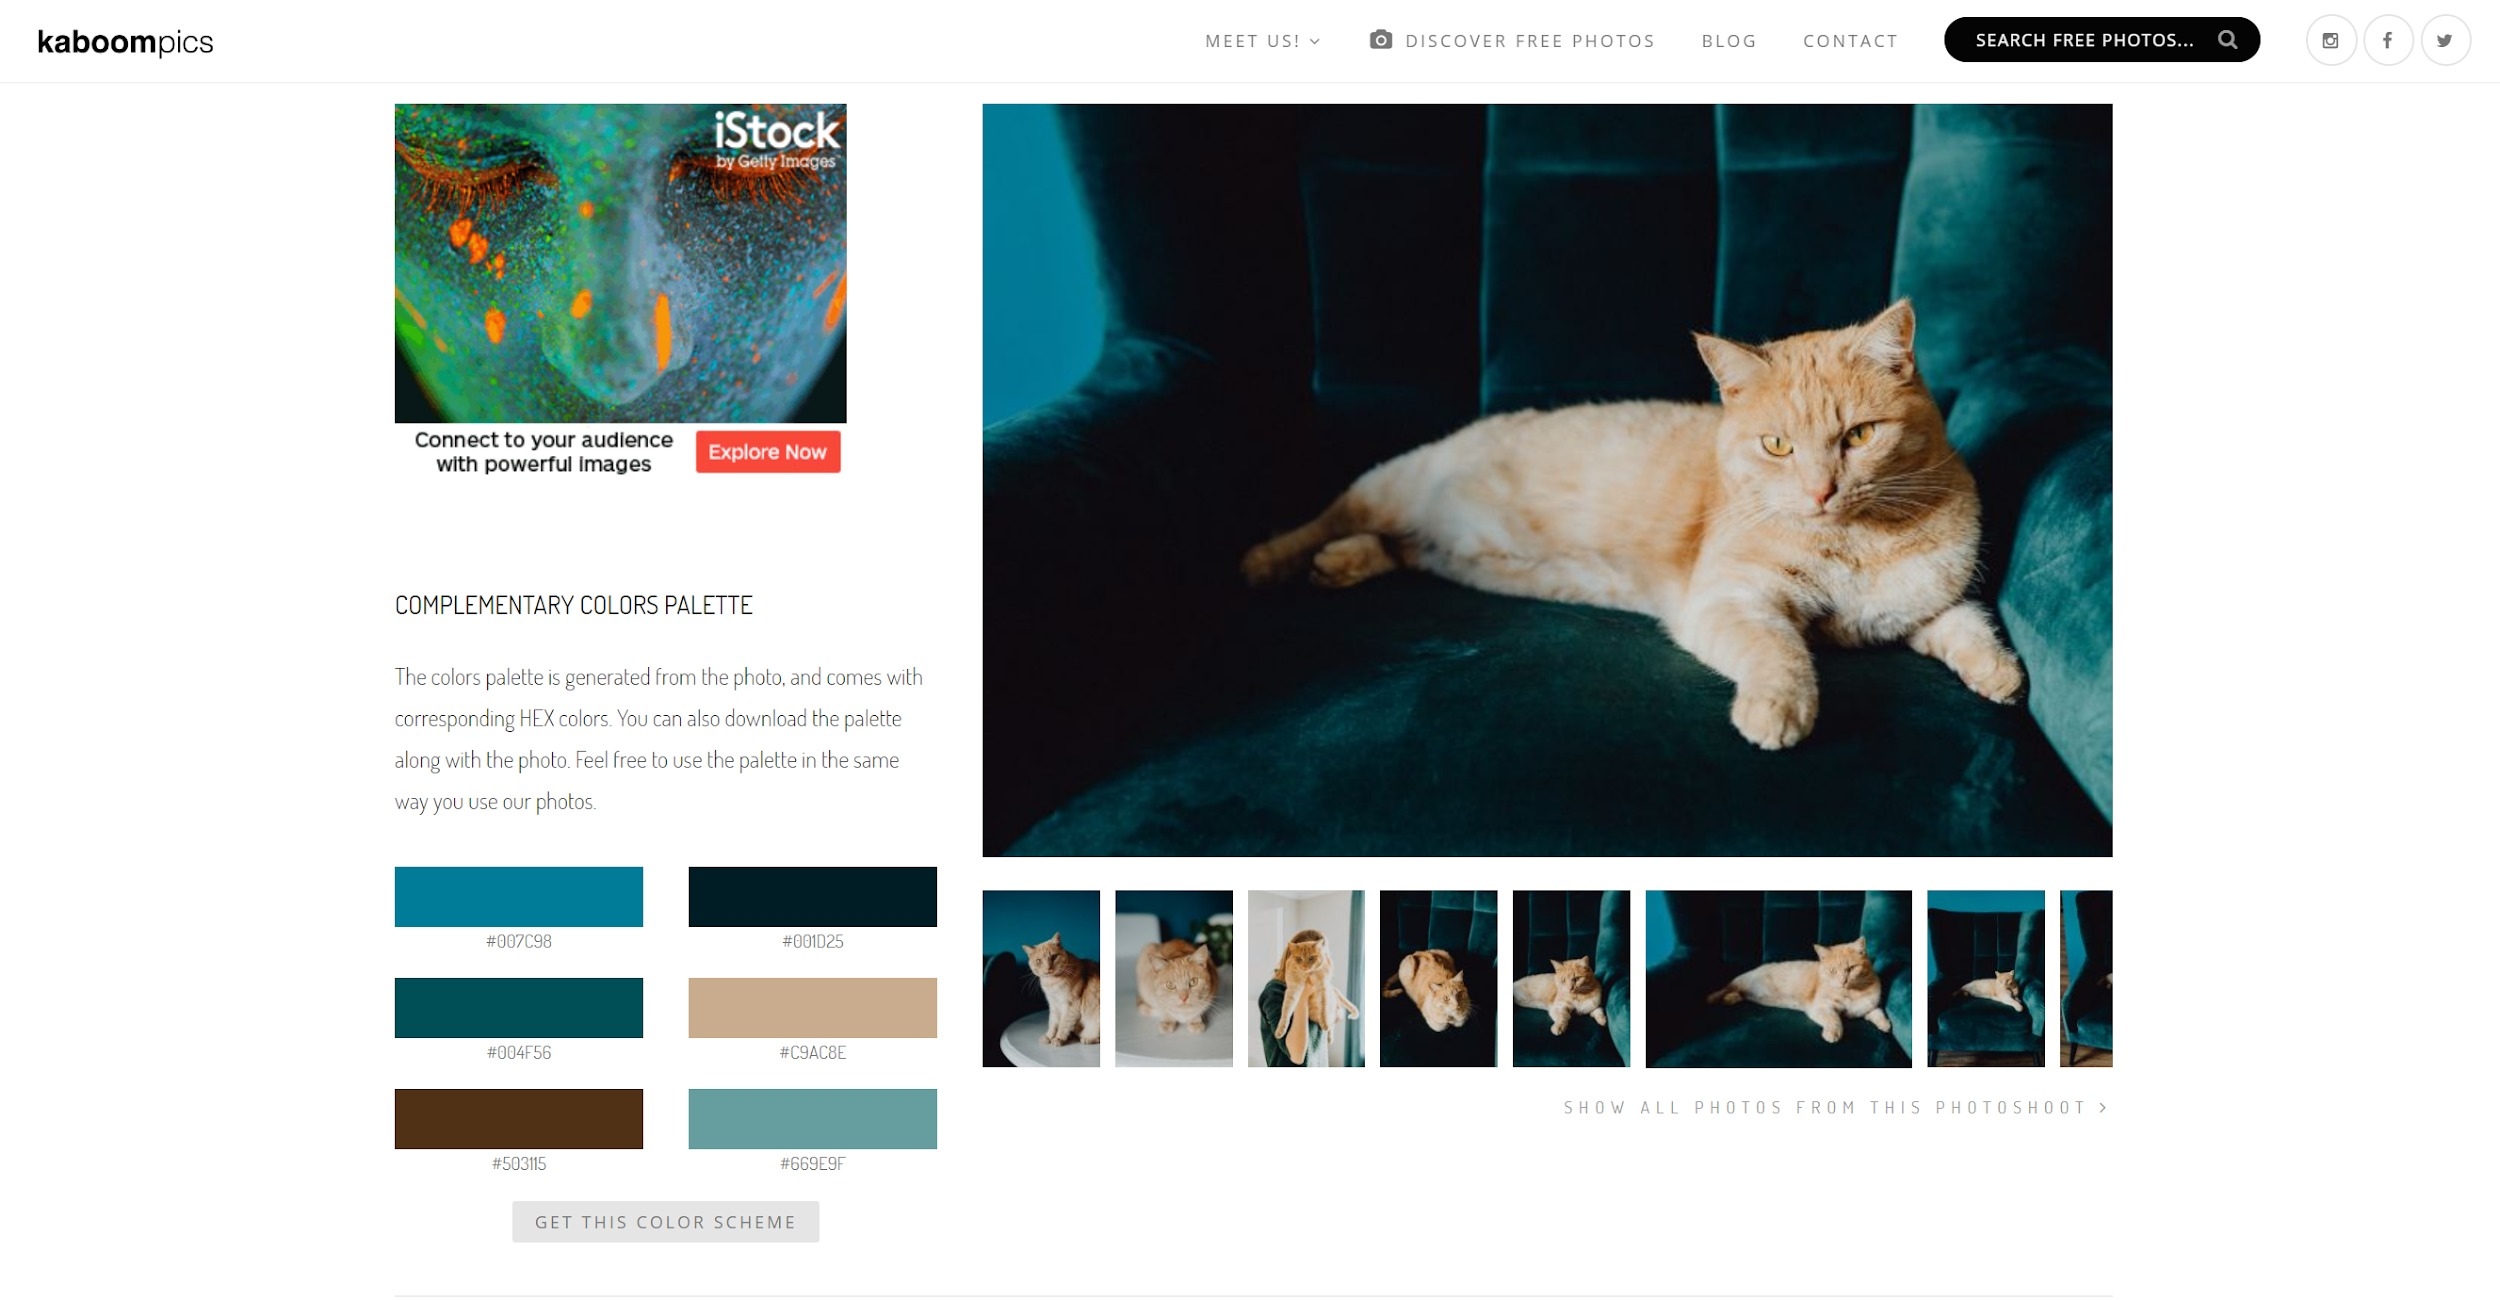 Where to find free stock photos online - Kaboompics Color Palette